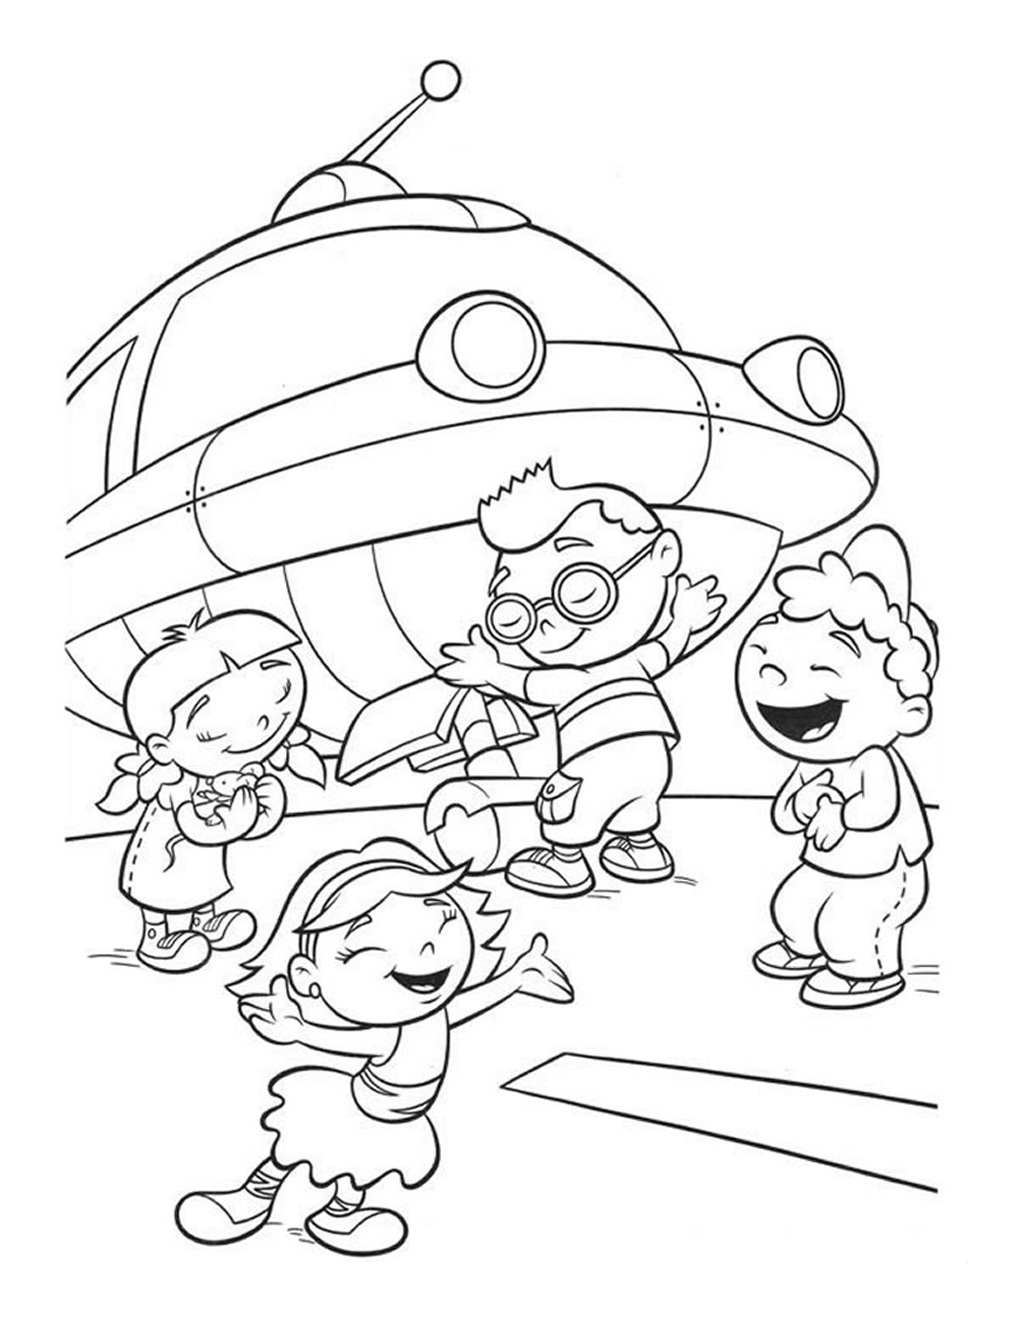 Free printable little einsteins coloring pages get ready Coloring book